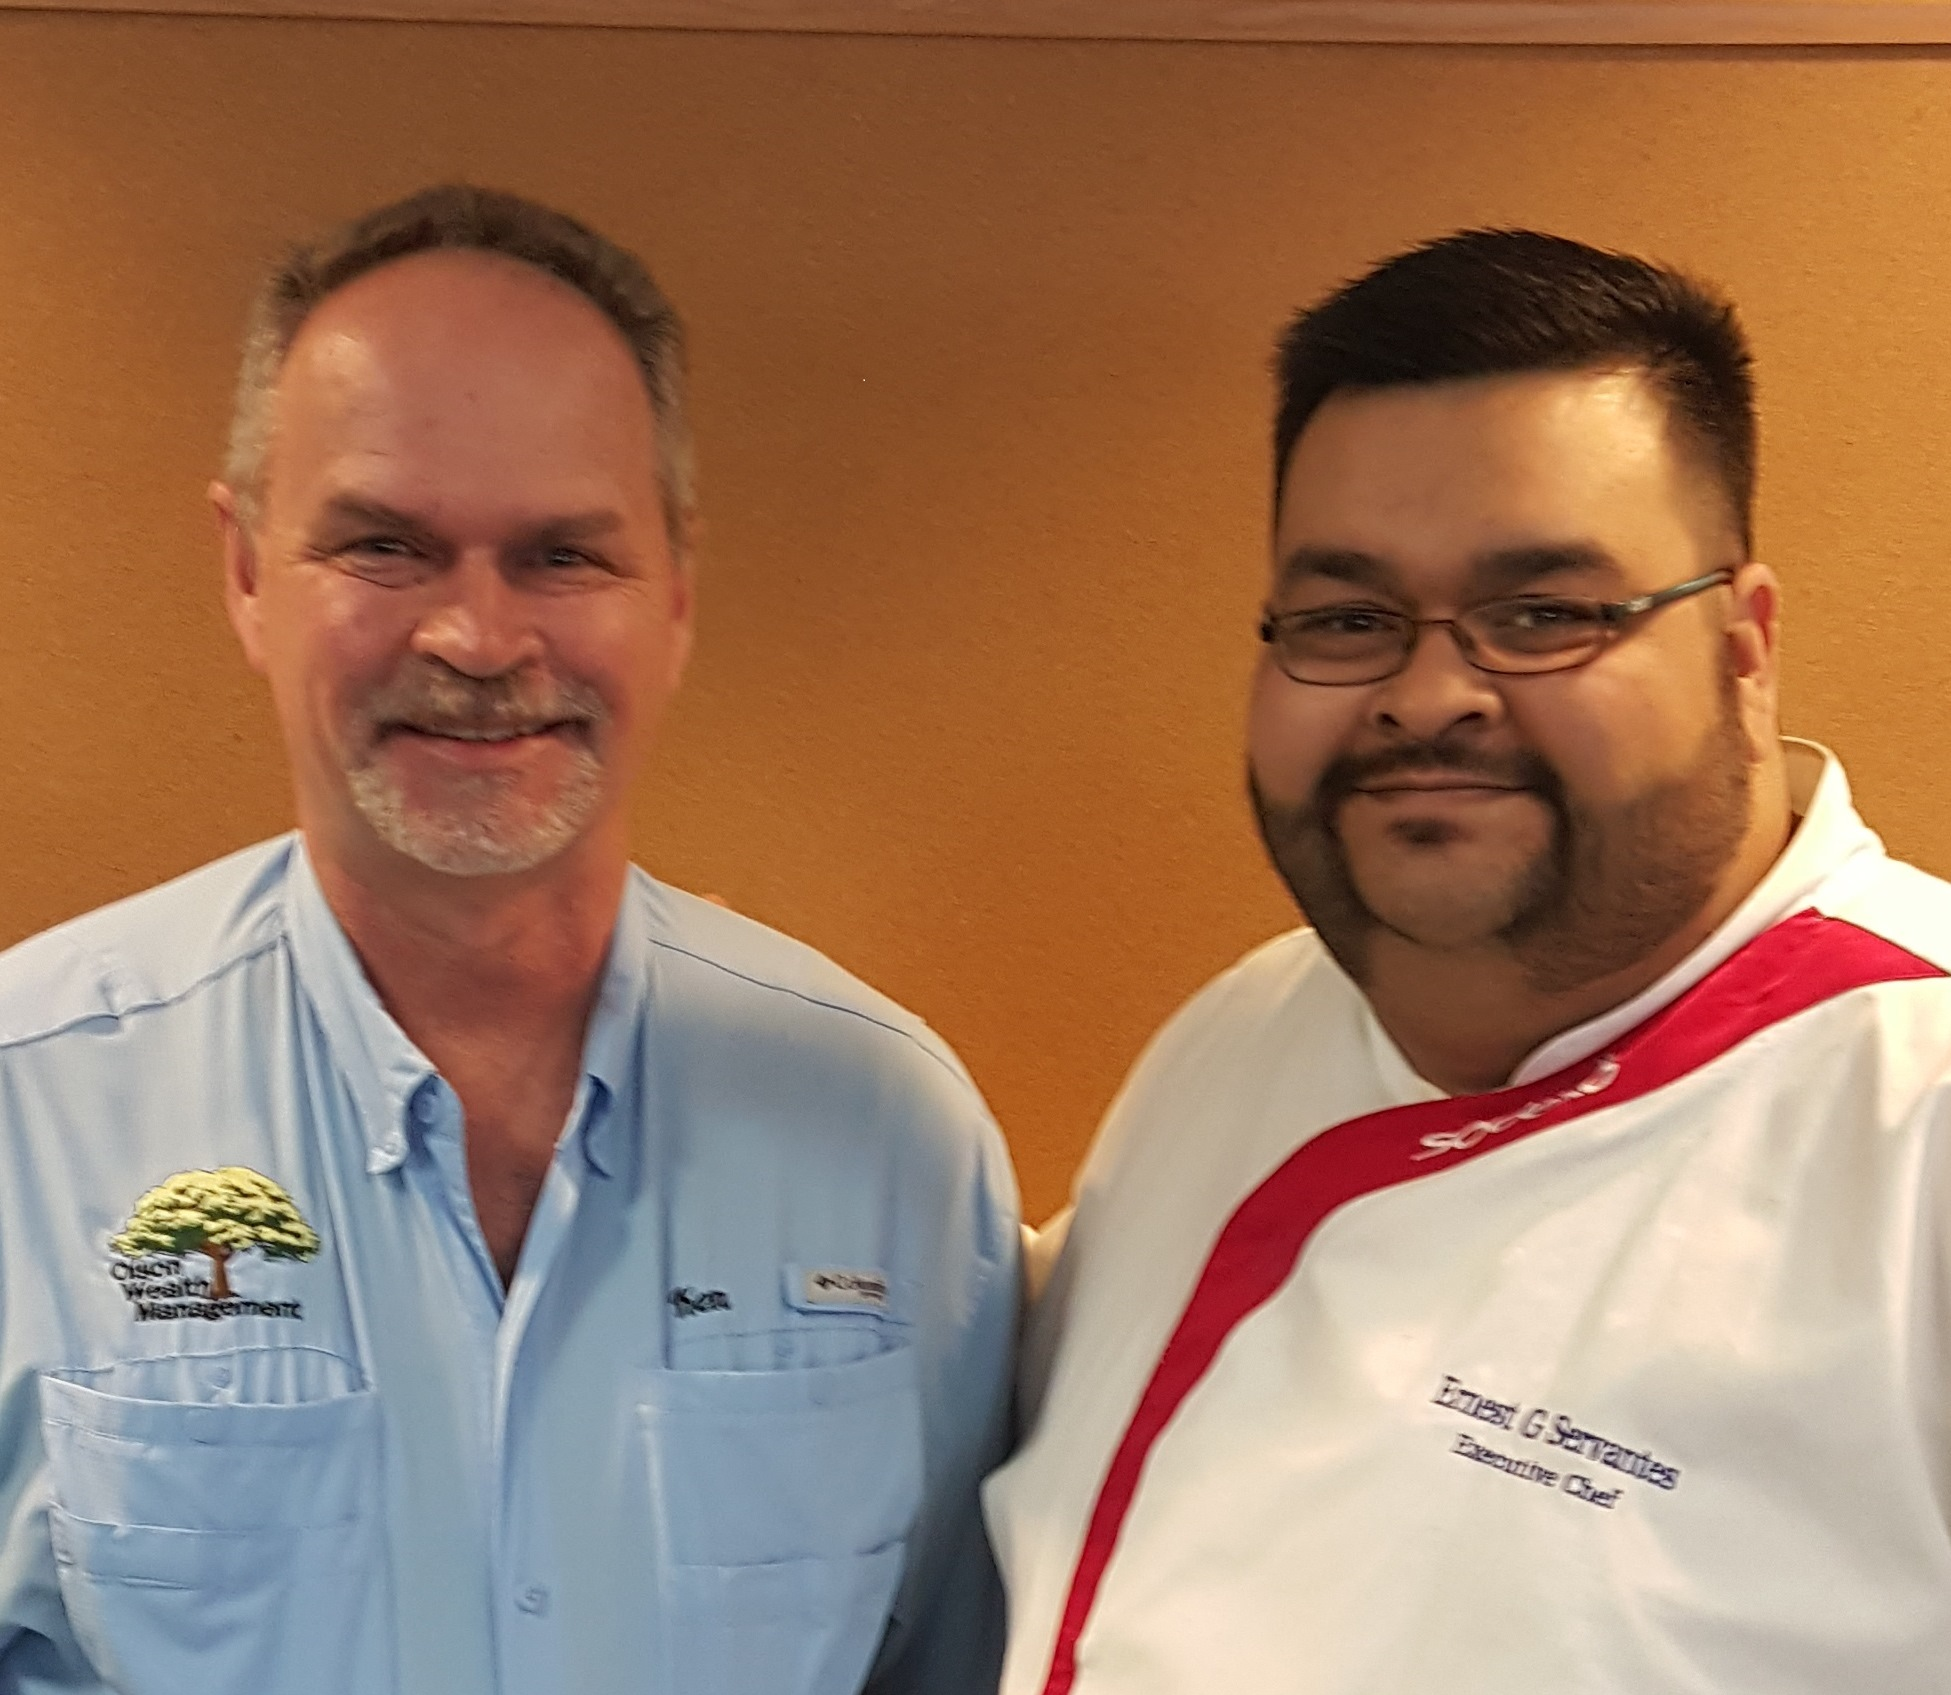 Ken with Chef Ernest Servantes